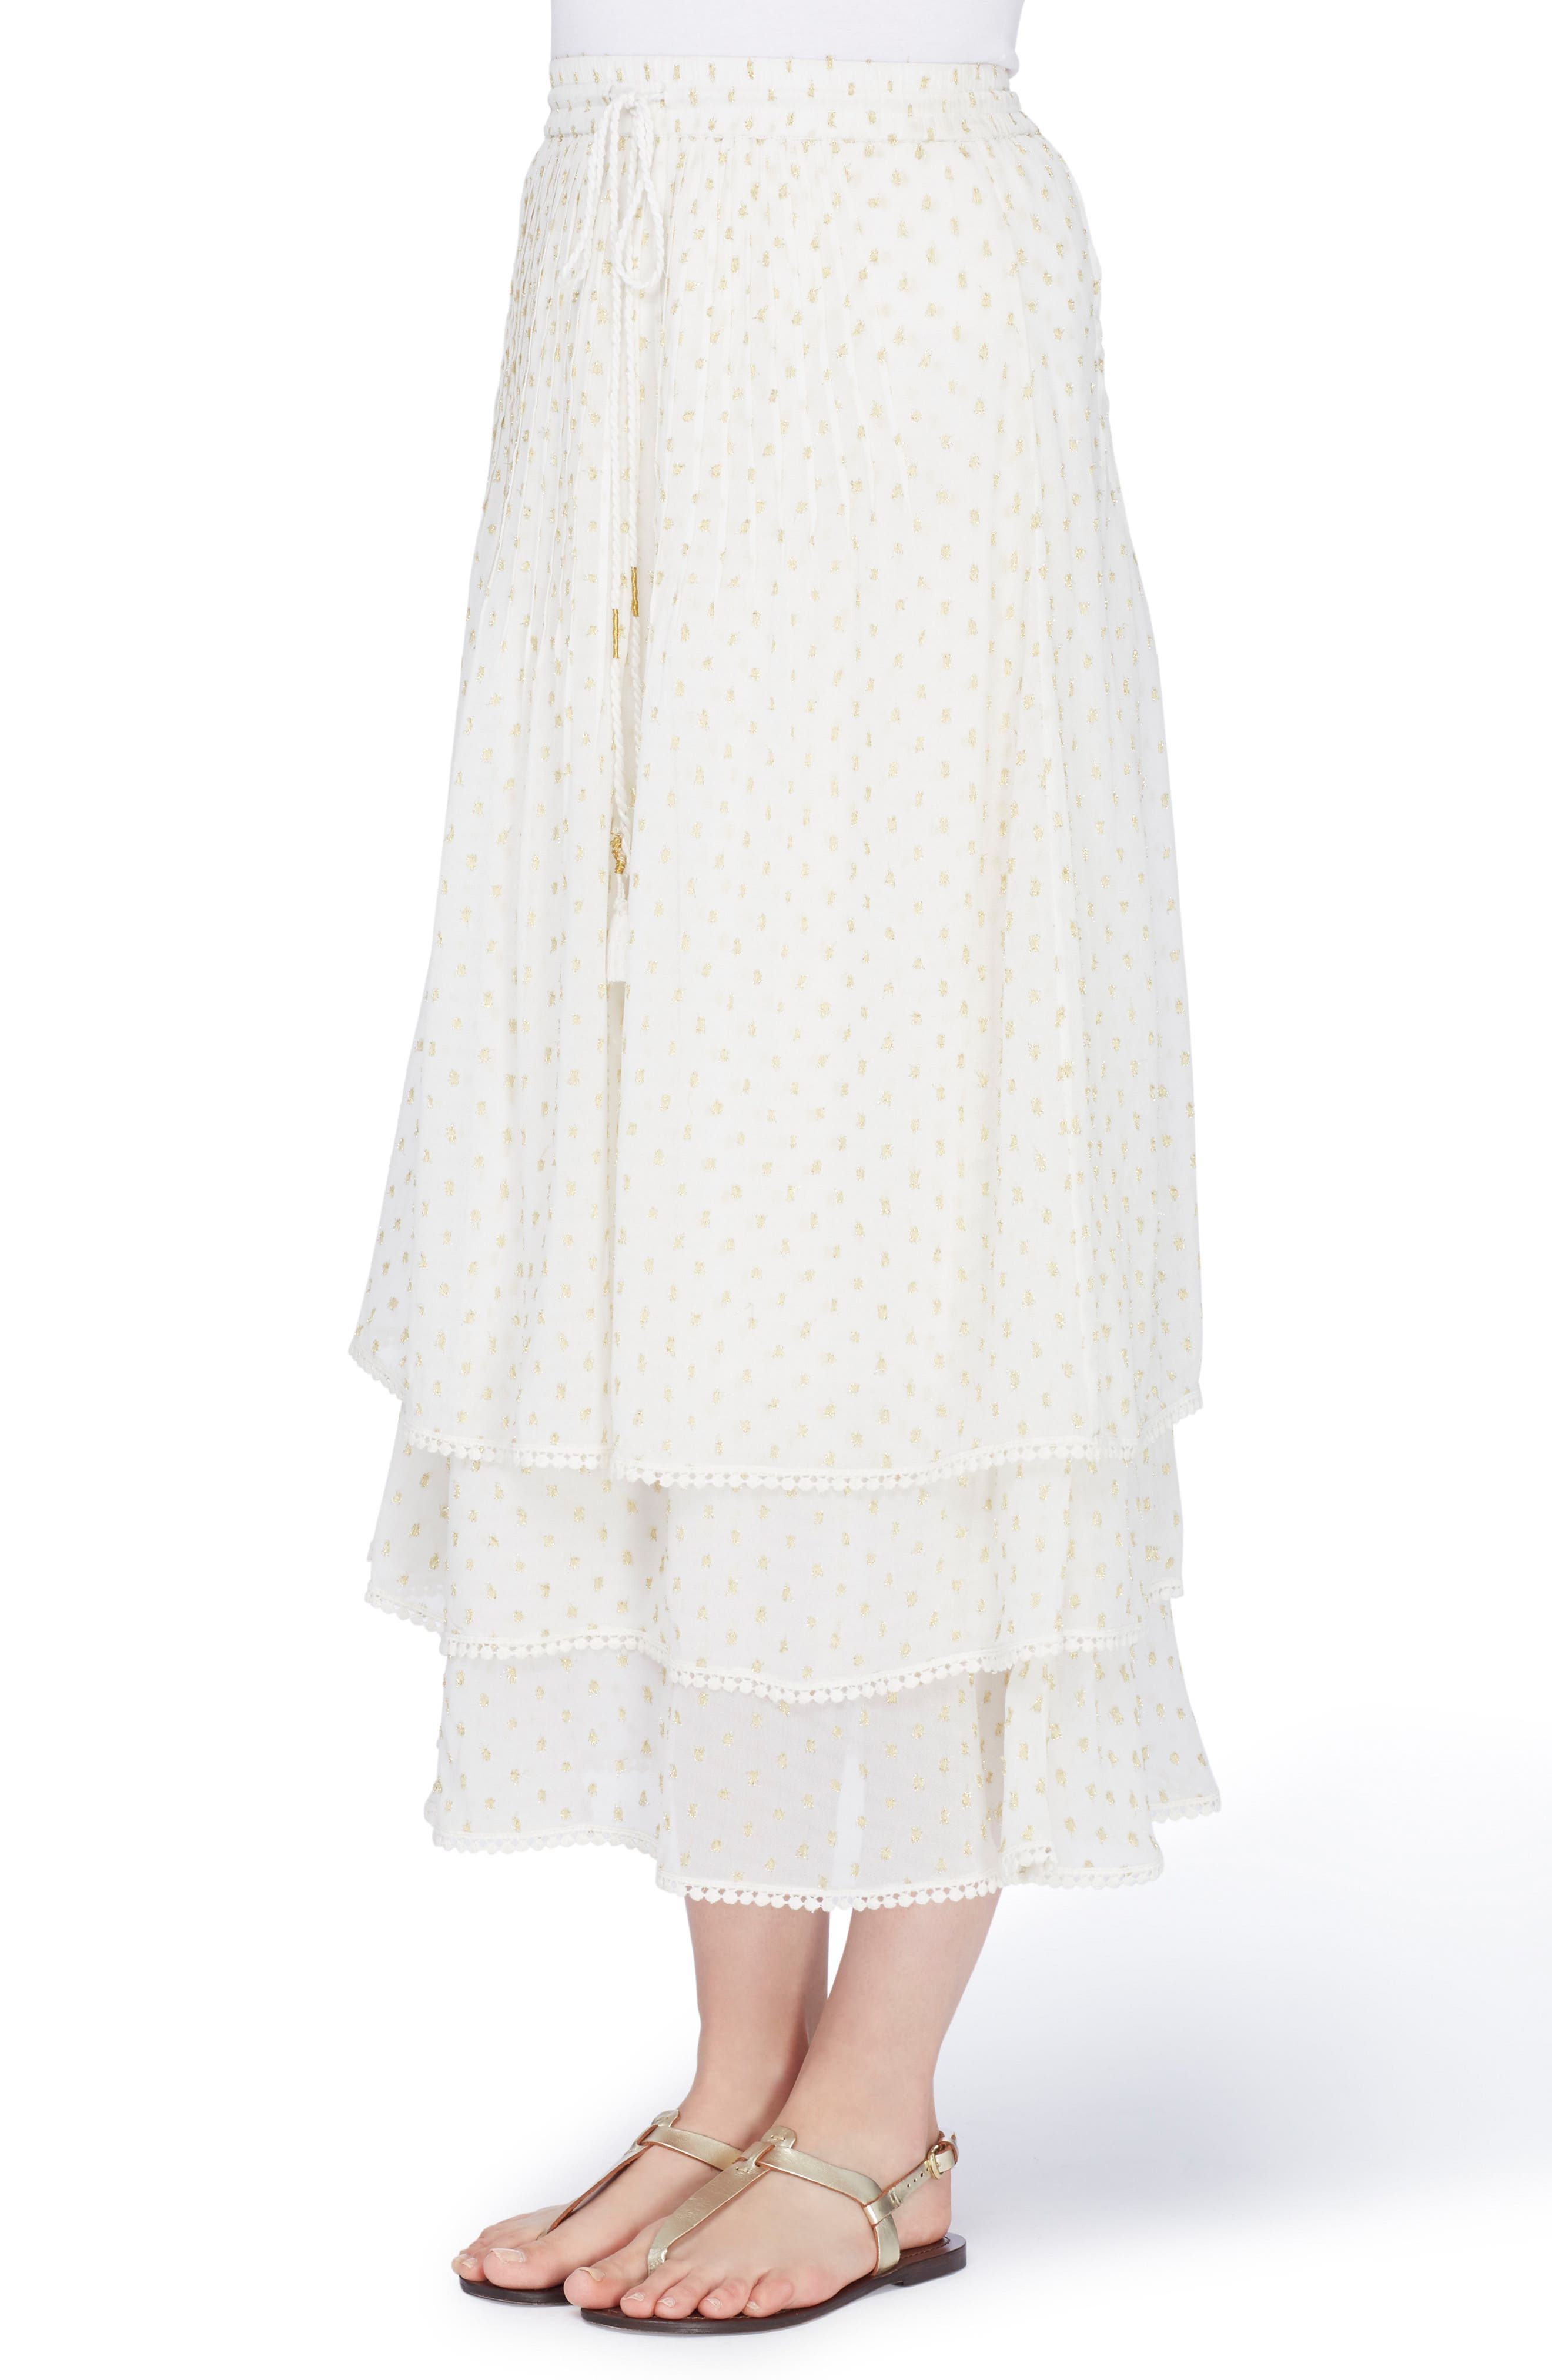 Berbas Clipped Jacquard Tiered Skirt,                             Main thumbnail 1, color,                             Off White/ Gold